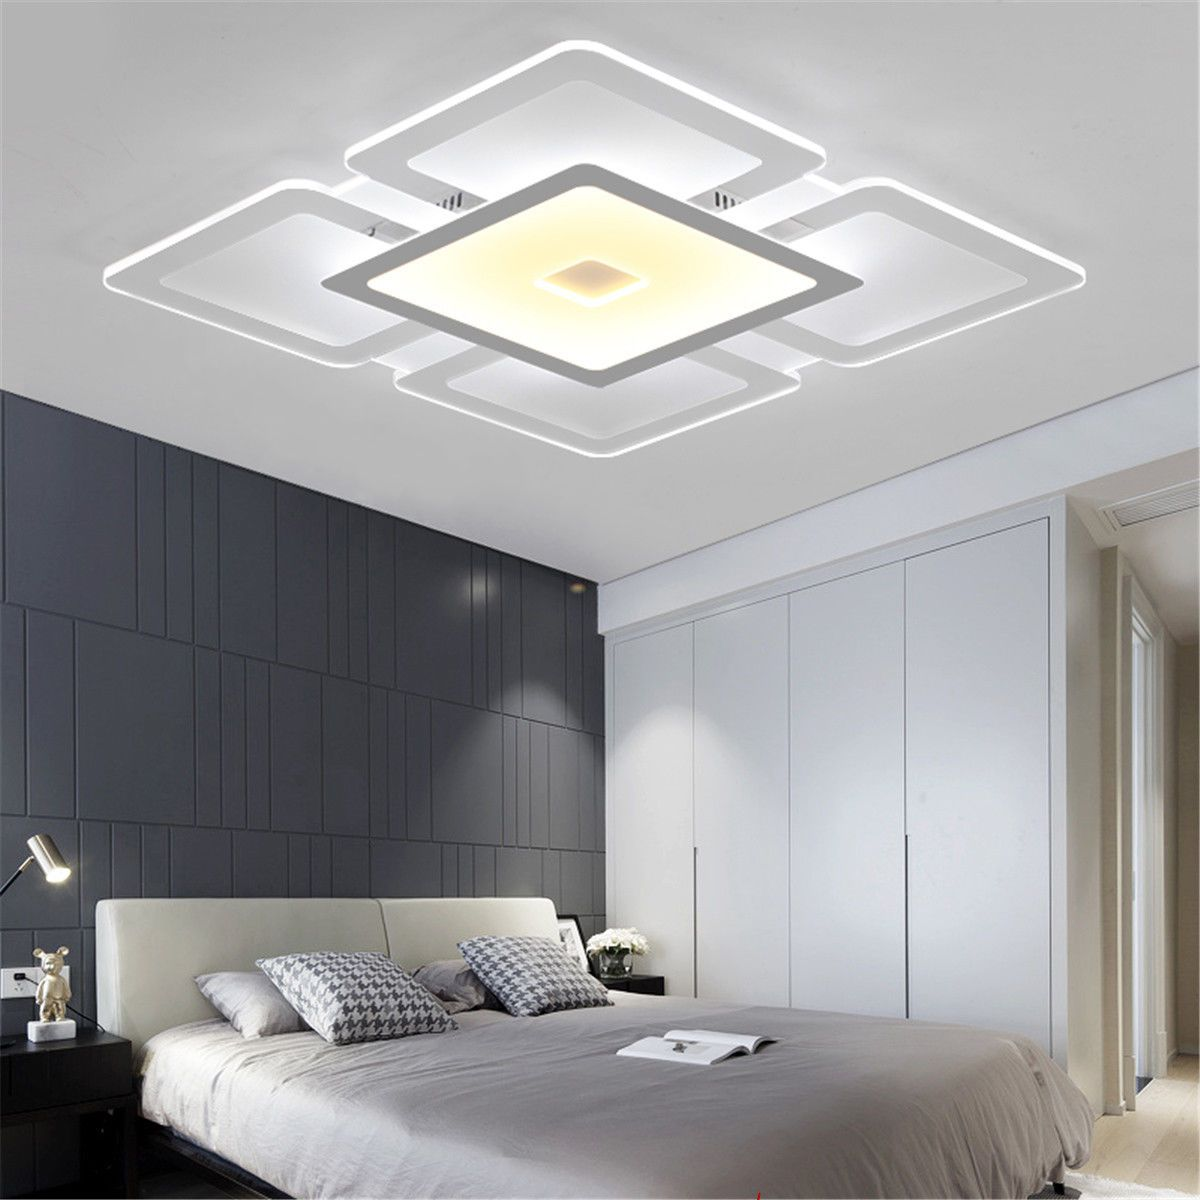 Modern-Ultra-Thin-LED-Square-Acrylic-Flush-Mount-Ceiling-Light-Wall-Sconces-Lamp